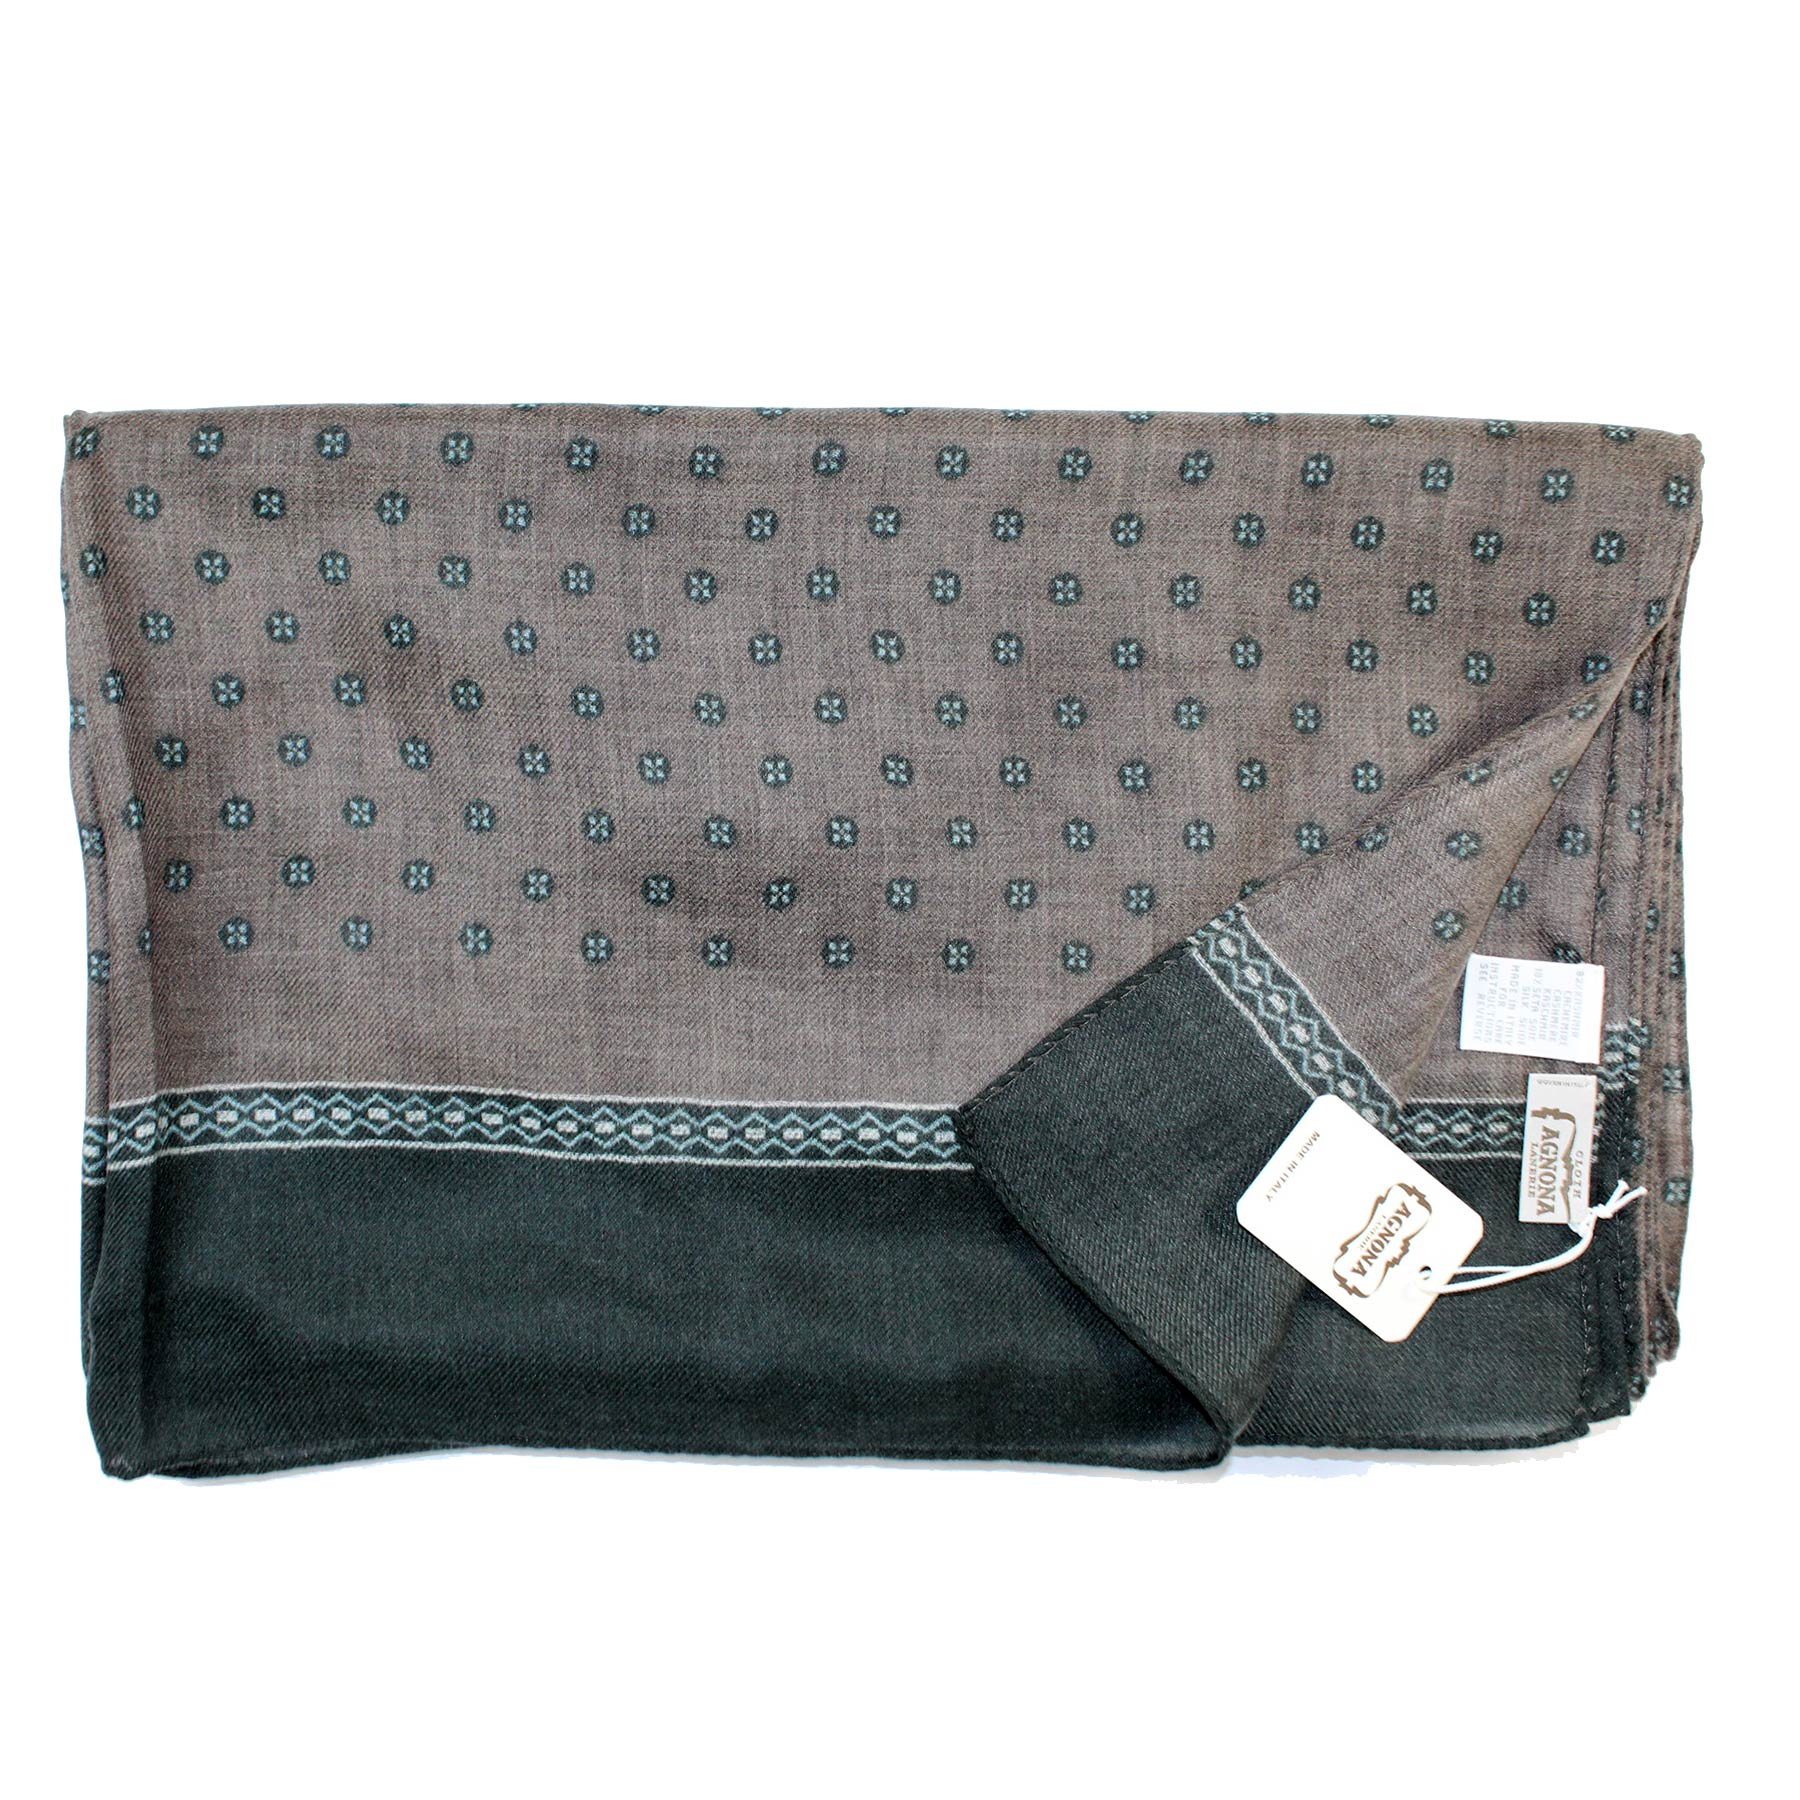 Agnona Scarf Taupe Gray Green Design